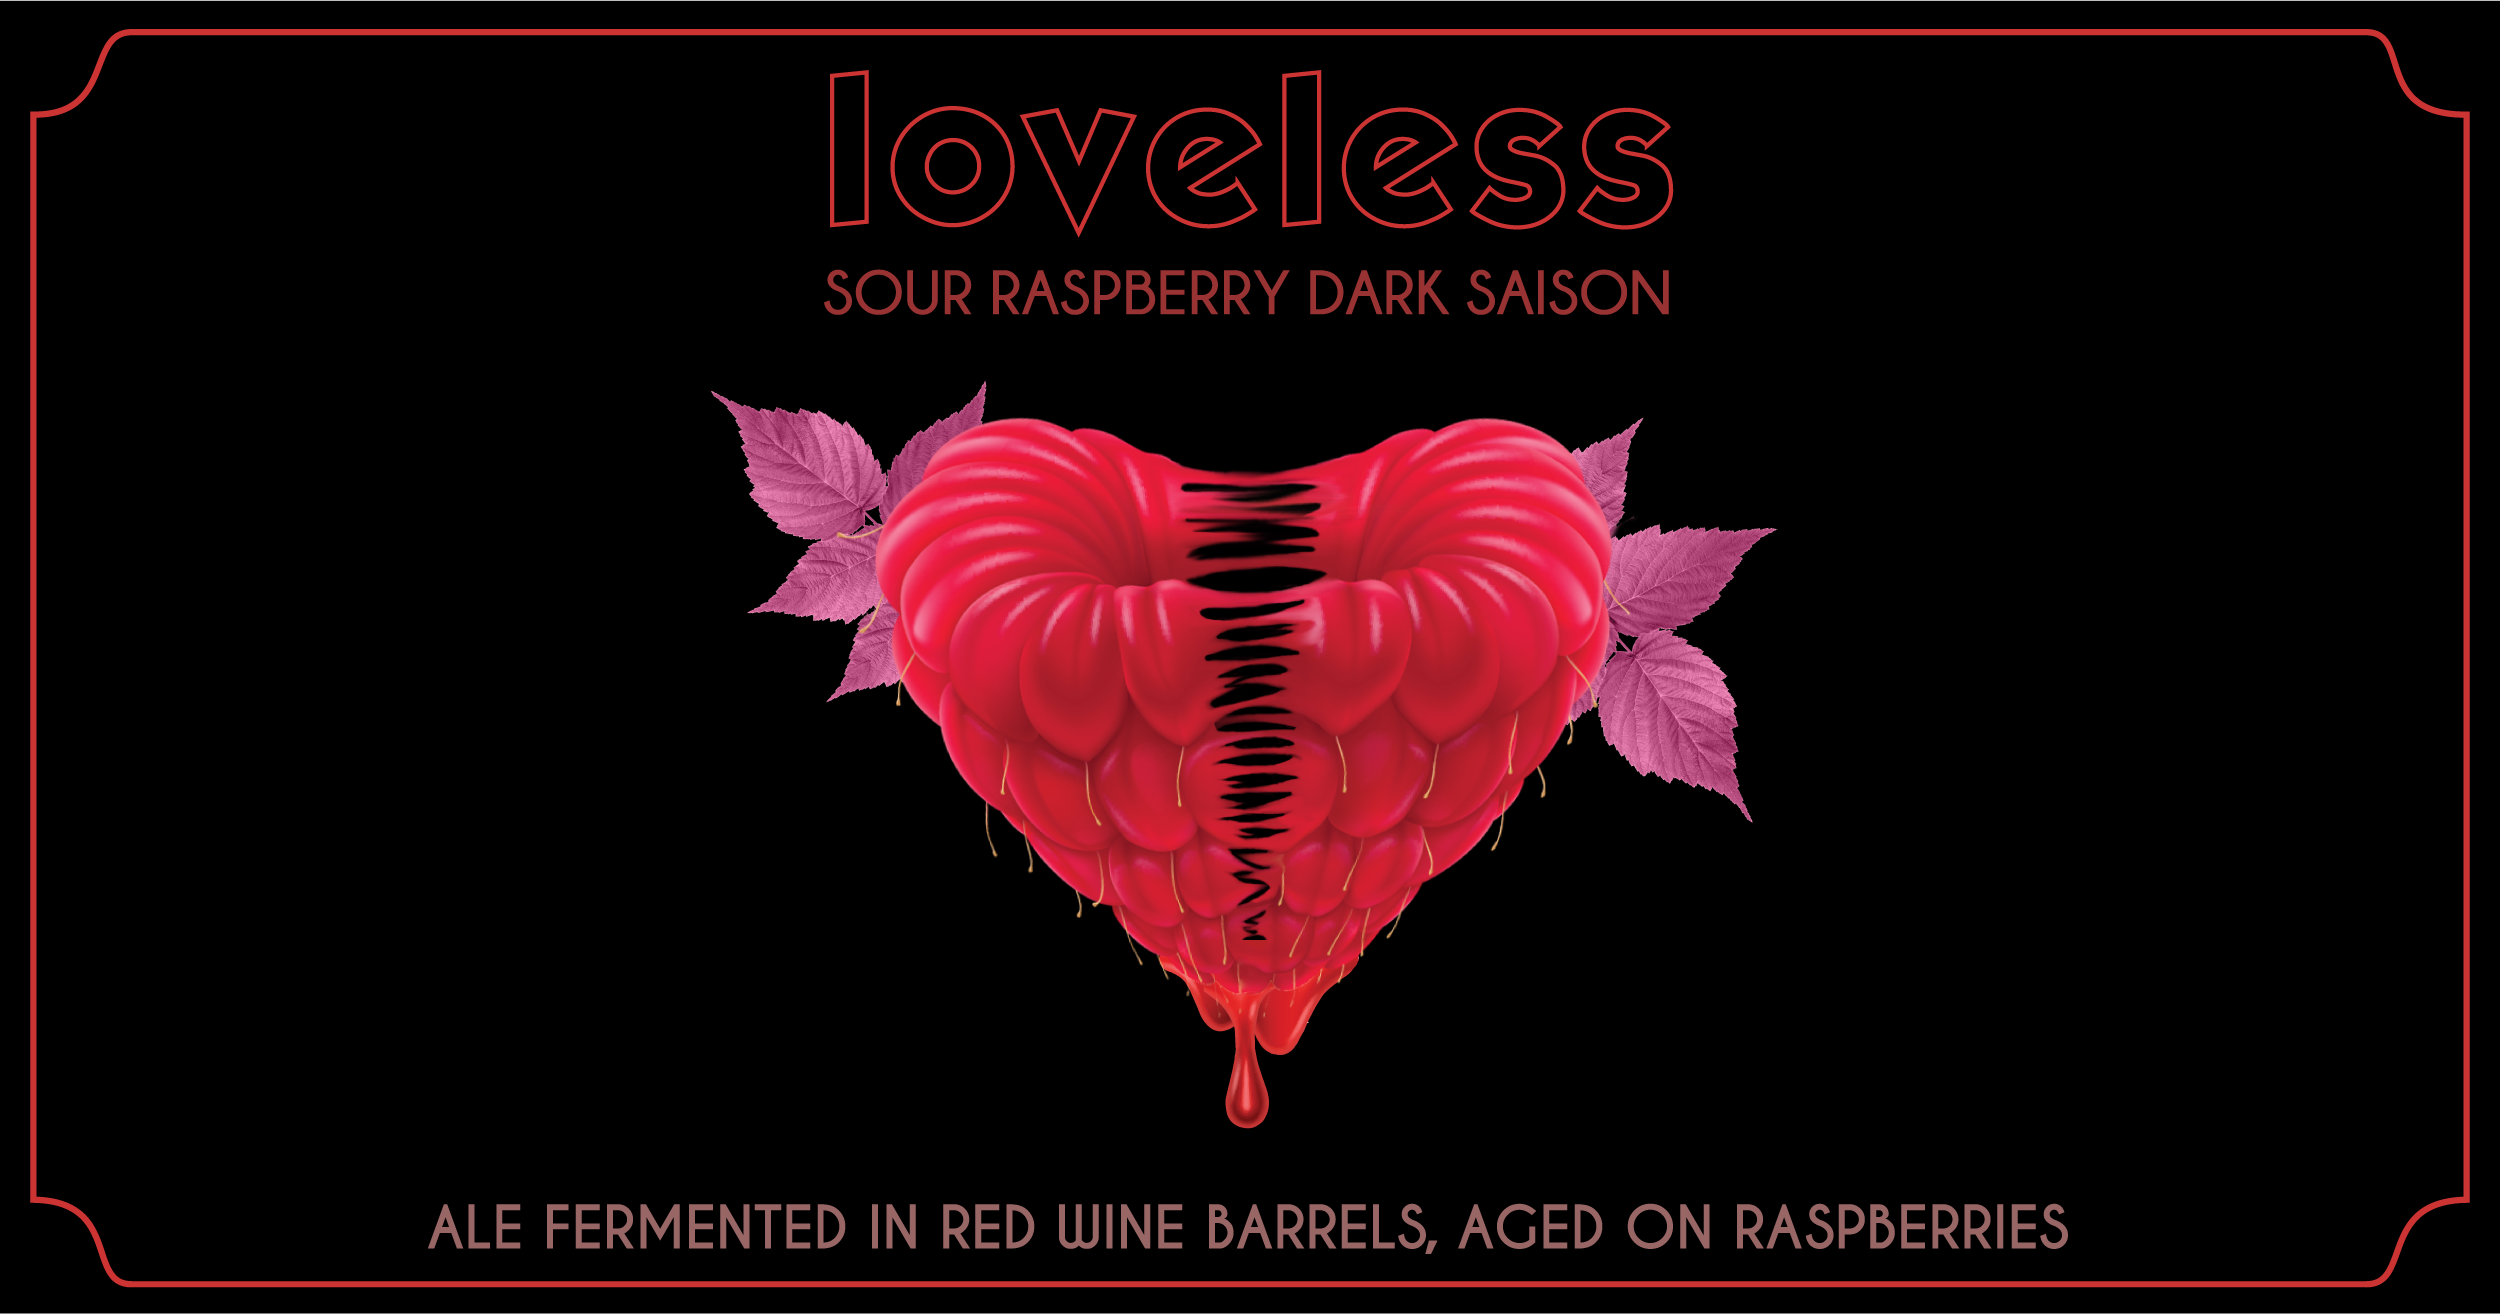 Ratio Beerworks Loveless Raspberry Dark Sour Saison